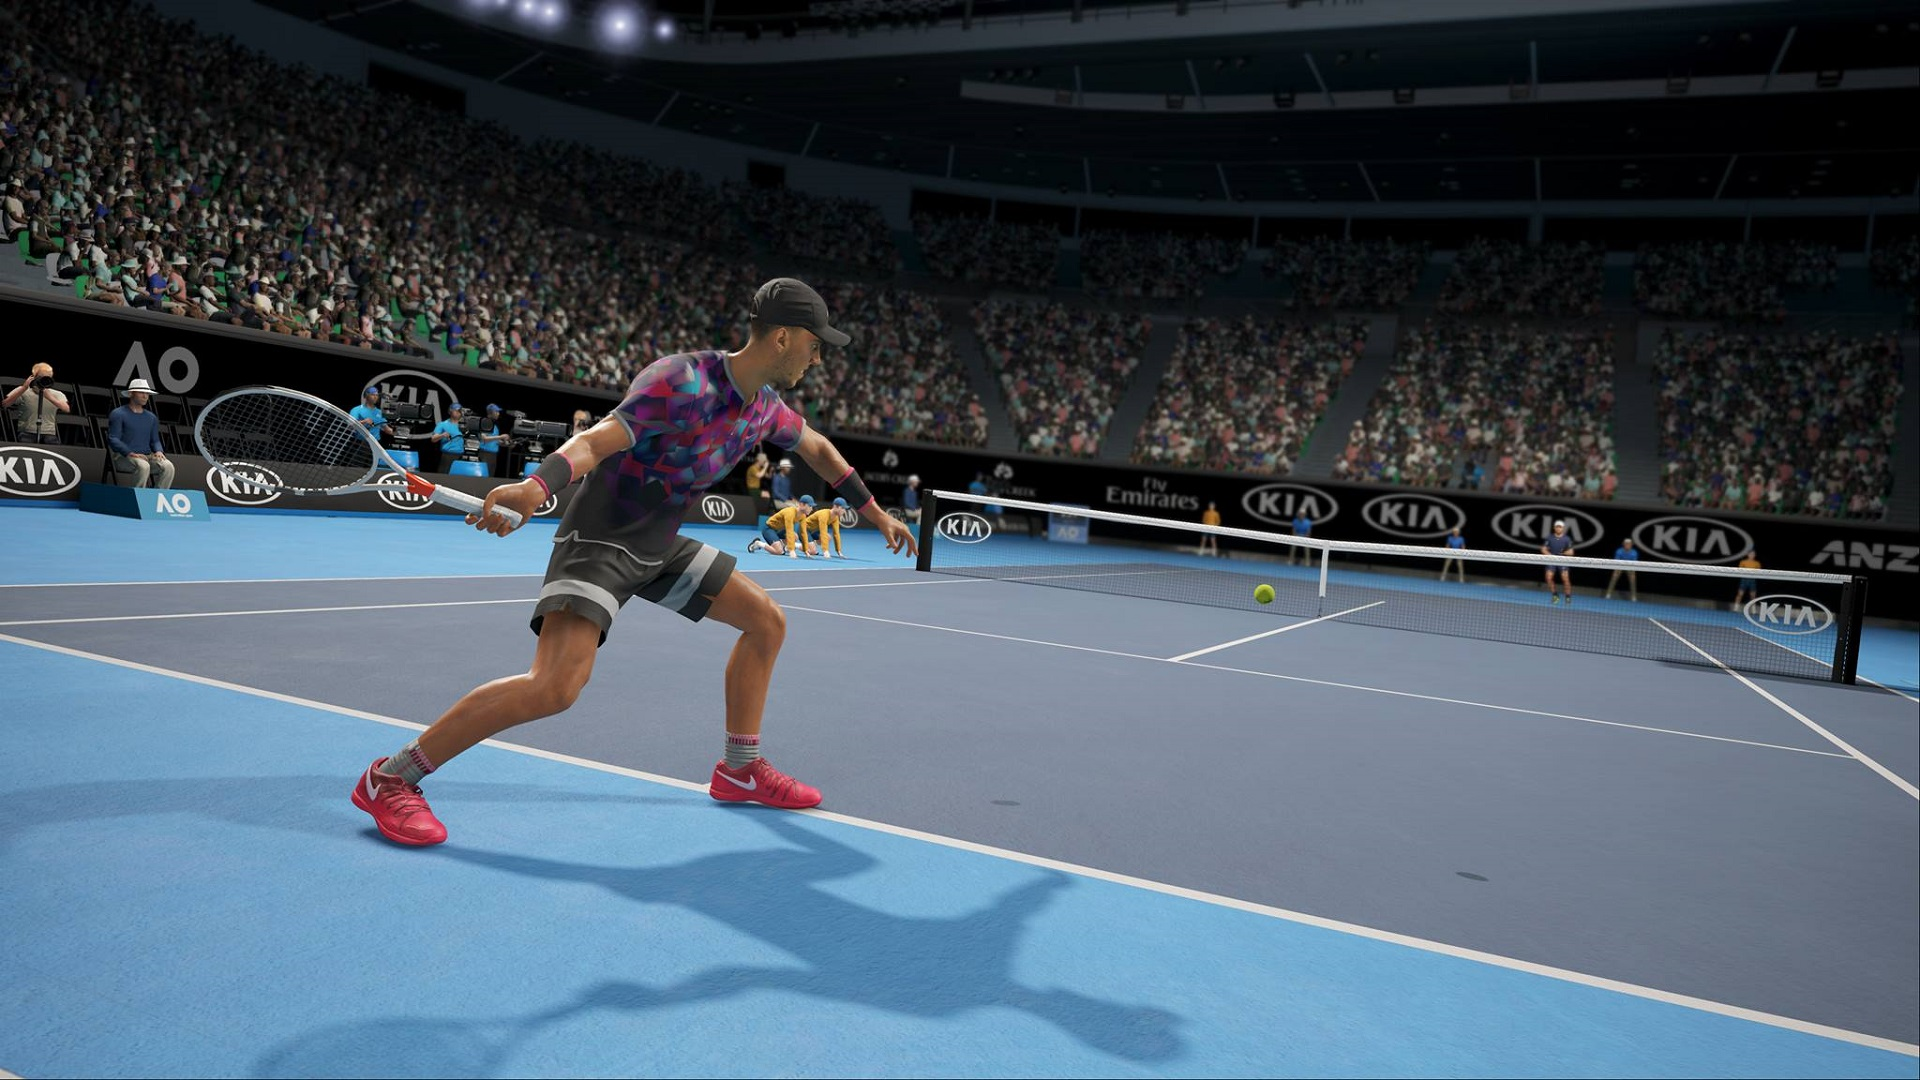 world tennis ps4 game download tour